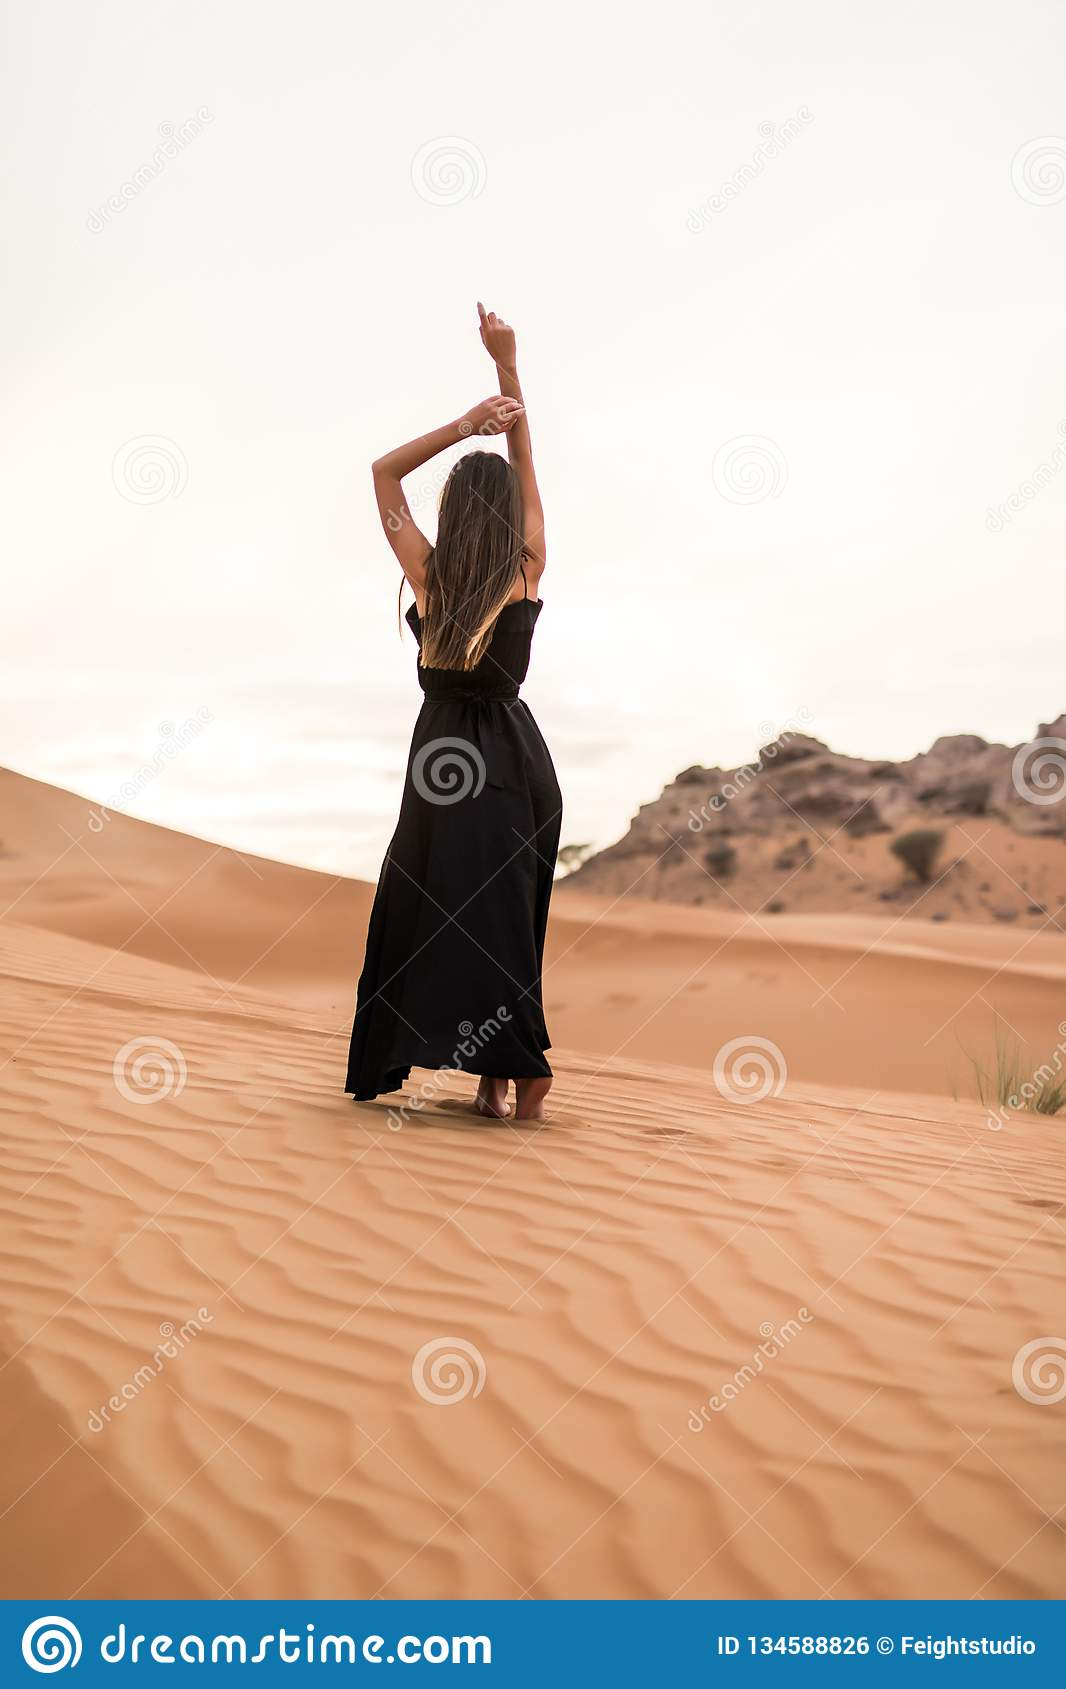 Rear view of young woman in black dress dancing in sandy desert at sunset